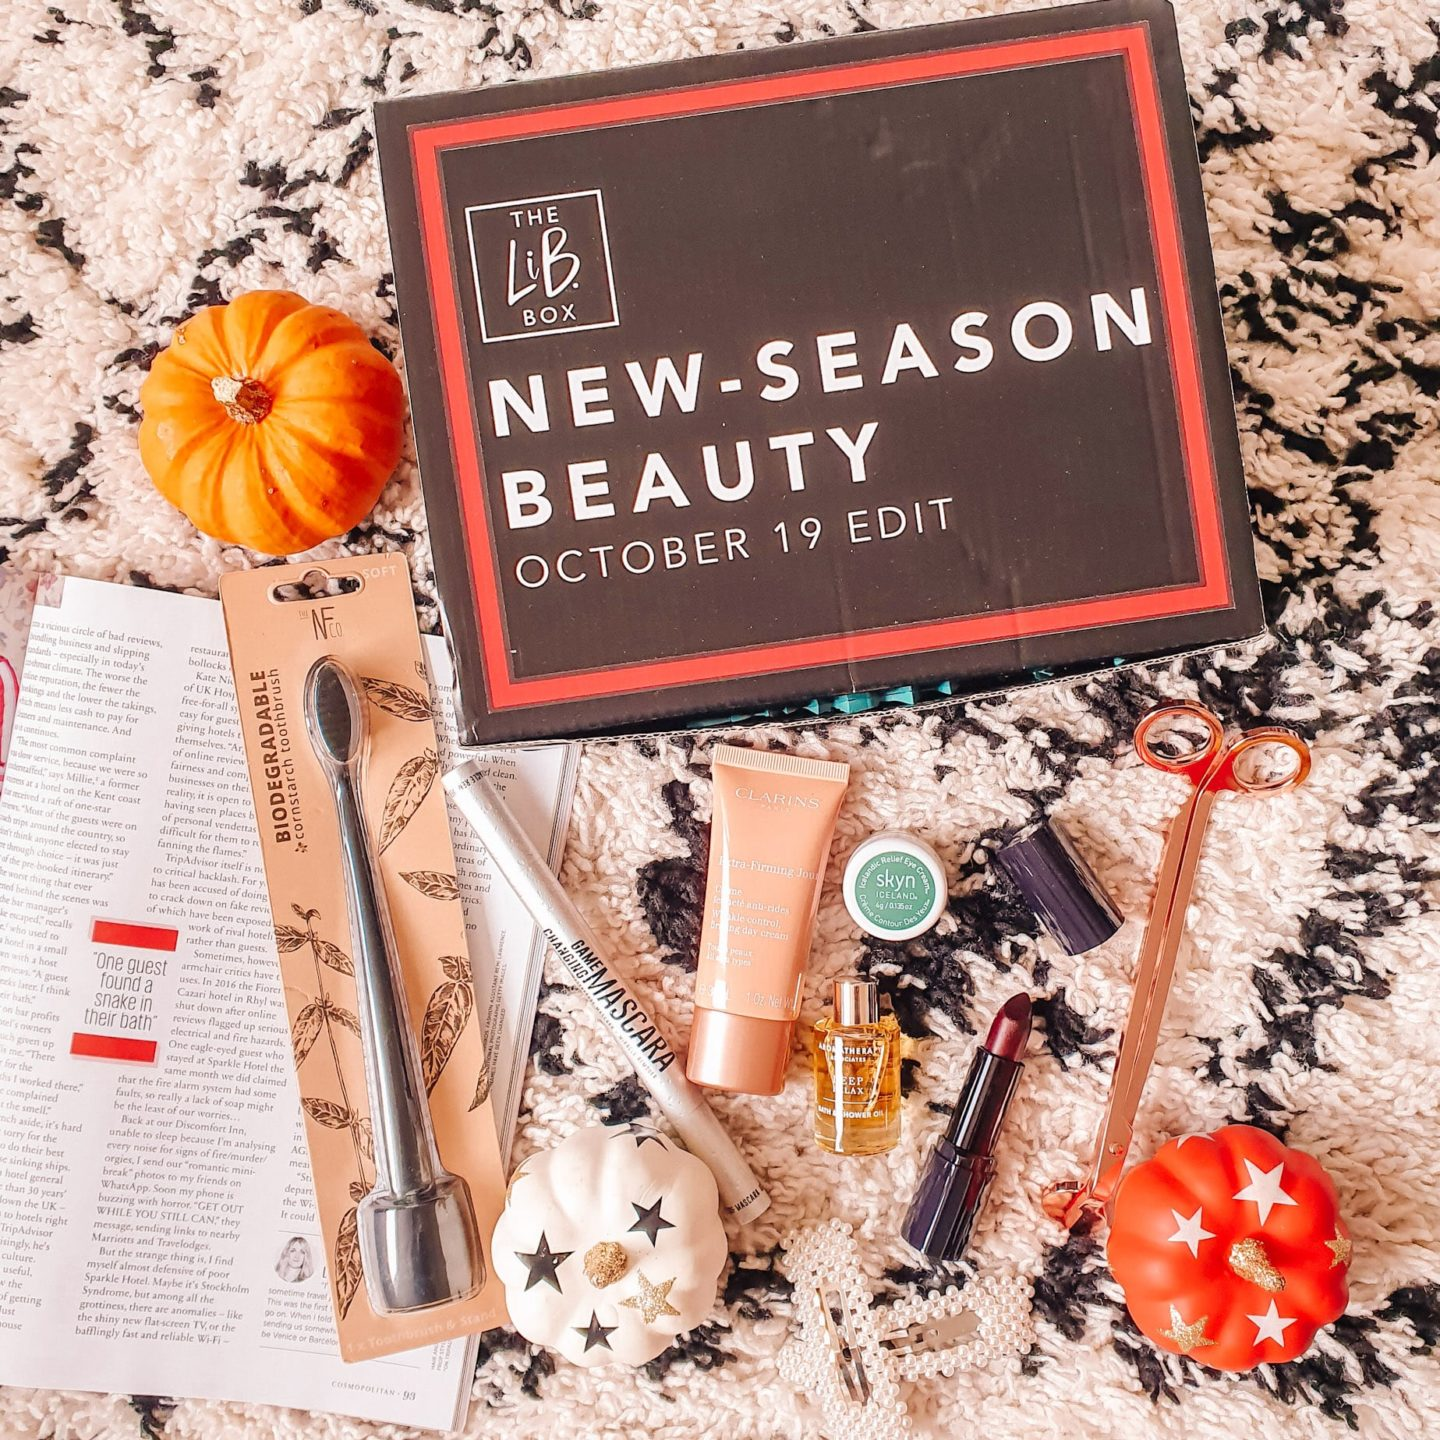 Latest in Beauty New Season Beauty October Edit